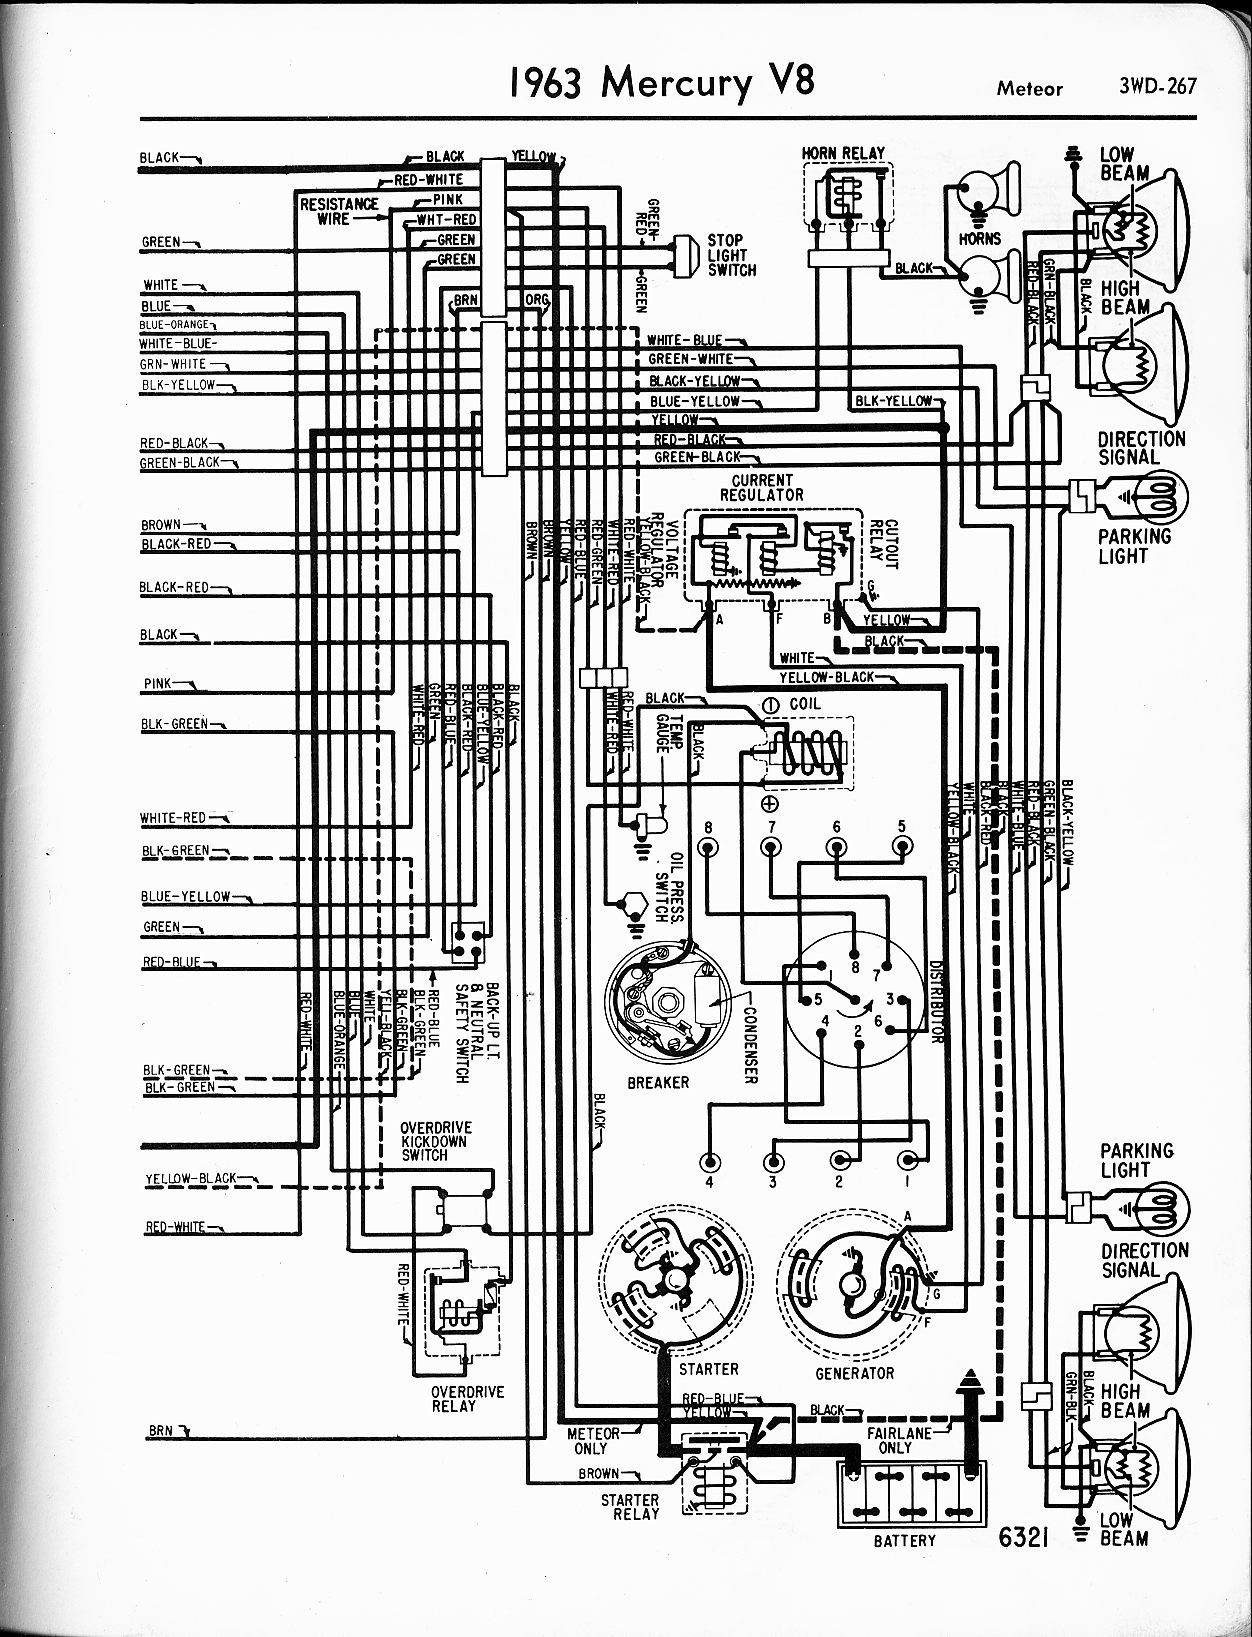 1955 Chevy Bel Air Wiring Diagram Library 1957 Wire 1252x1637 Mercury Diagrams